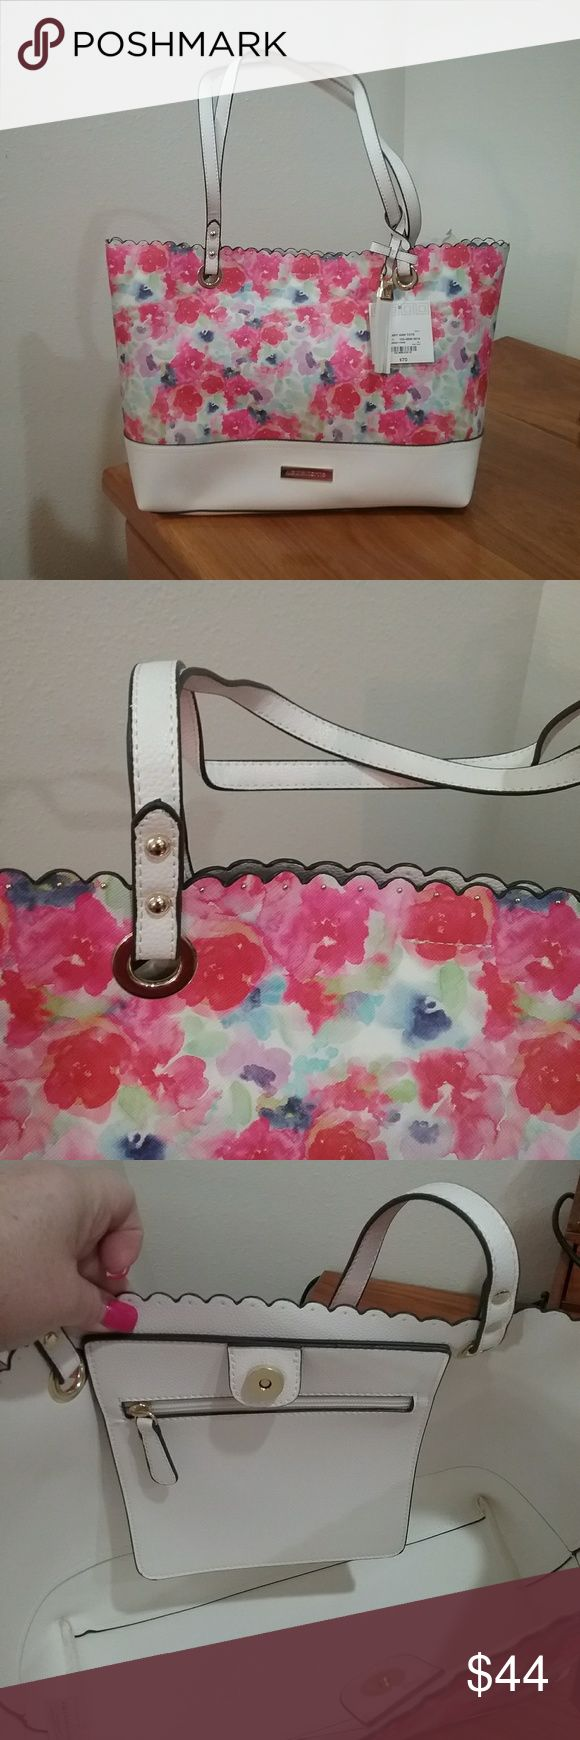 BNWT adorable purse! Brand new Liz Claiborne Mary Ann Tote in a pop of colors including pinks, lavenders, blues, greens and white.  Beautifully scalloped edging with gold tiny dots.  Snap closure with zippered pocket on the inside.  Comes with cute tassel charm on the handle.  Size is 11 1/2 inches long by 17 1/2 inches wide.  So pretty! Liz Claiborne Bags Totes